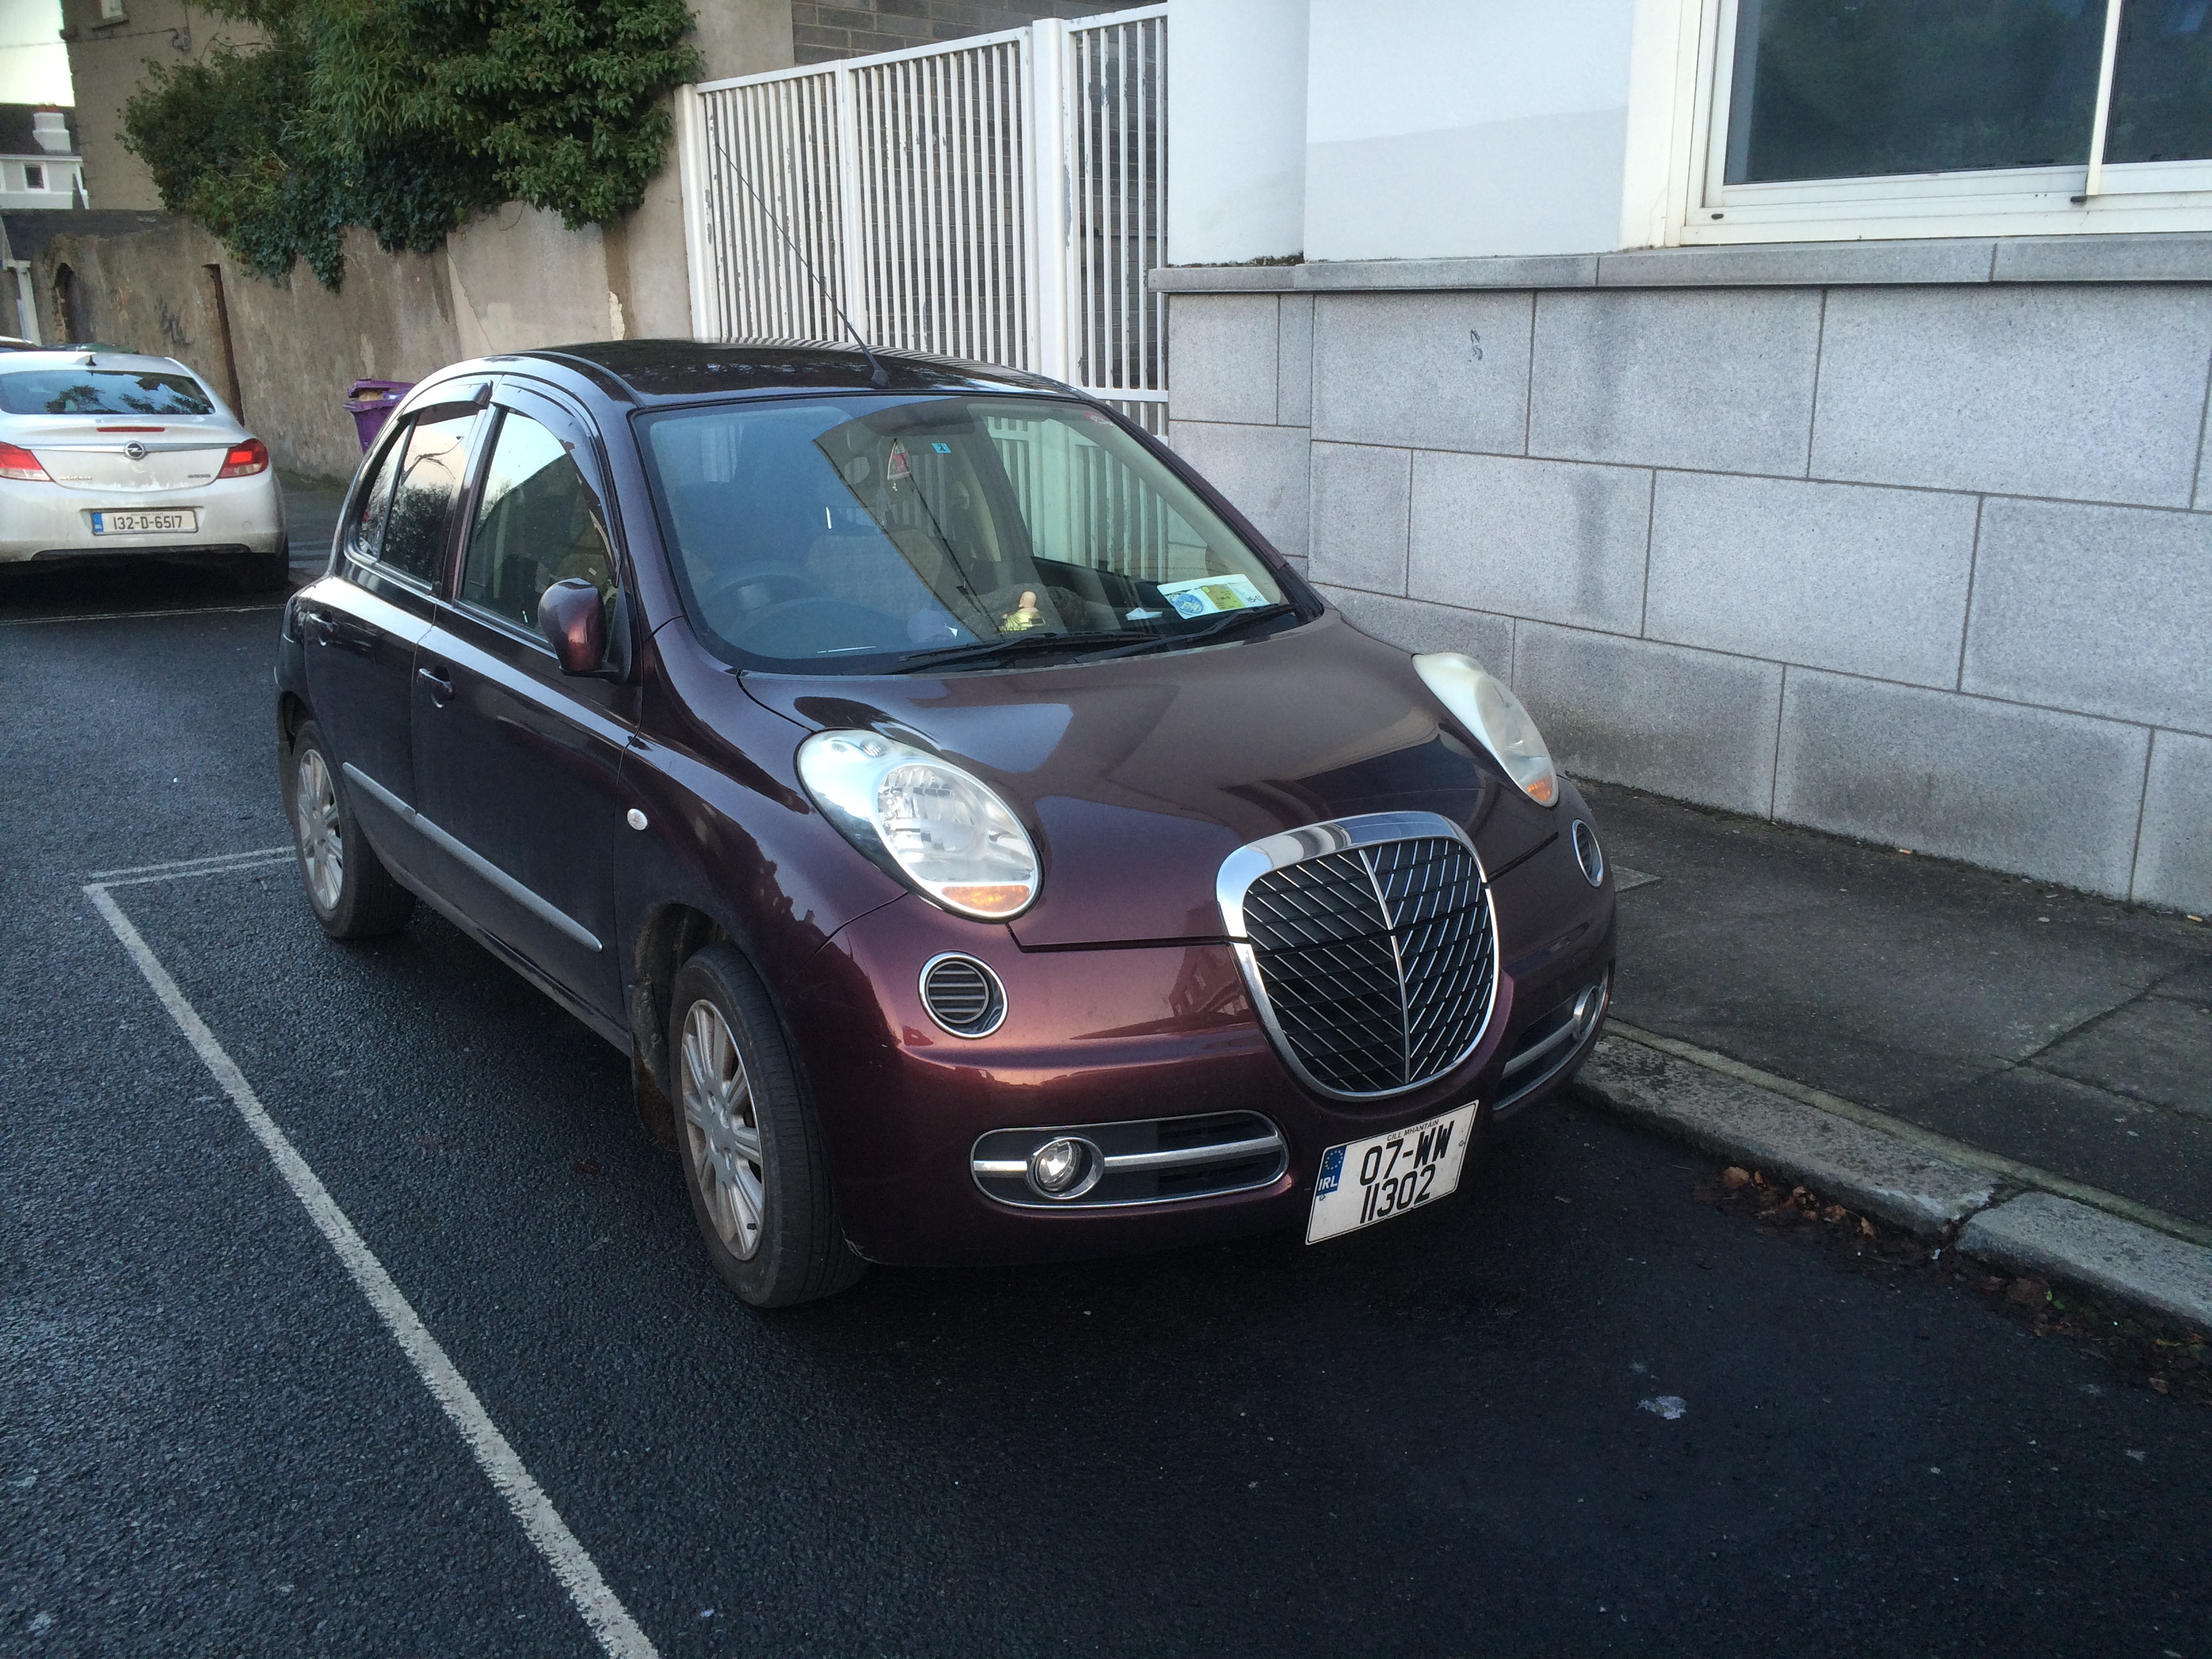 Most Of It Is A Nissan Micra But It Has A Different Grille And Bumper. The  Rear And Side Are Much The Same As The Micra. It Has A 1.2 Litre, ...